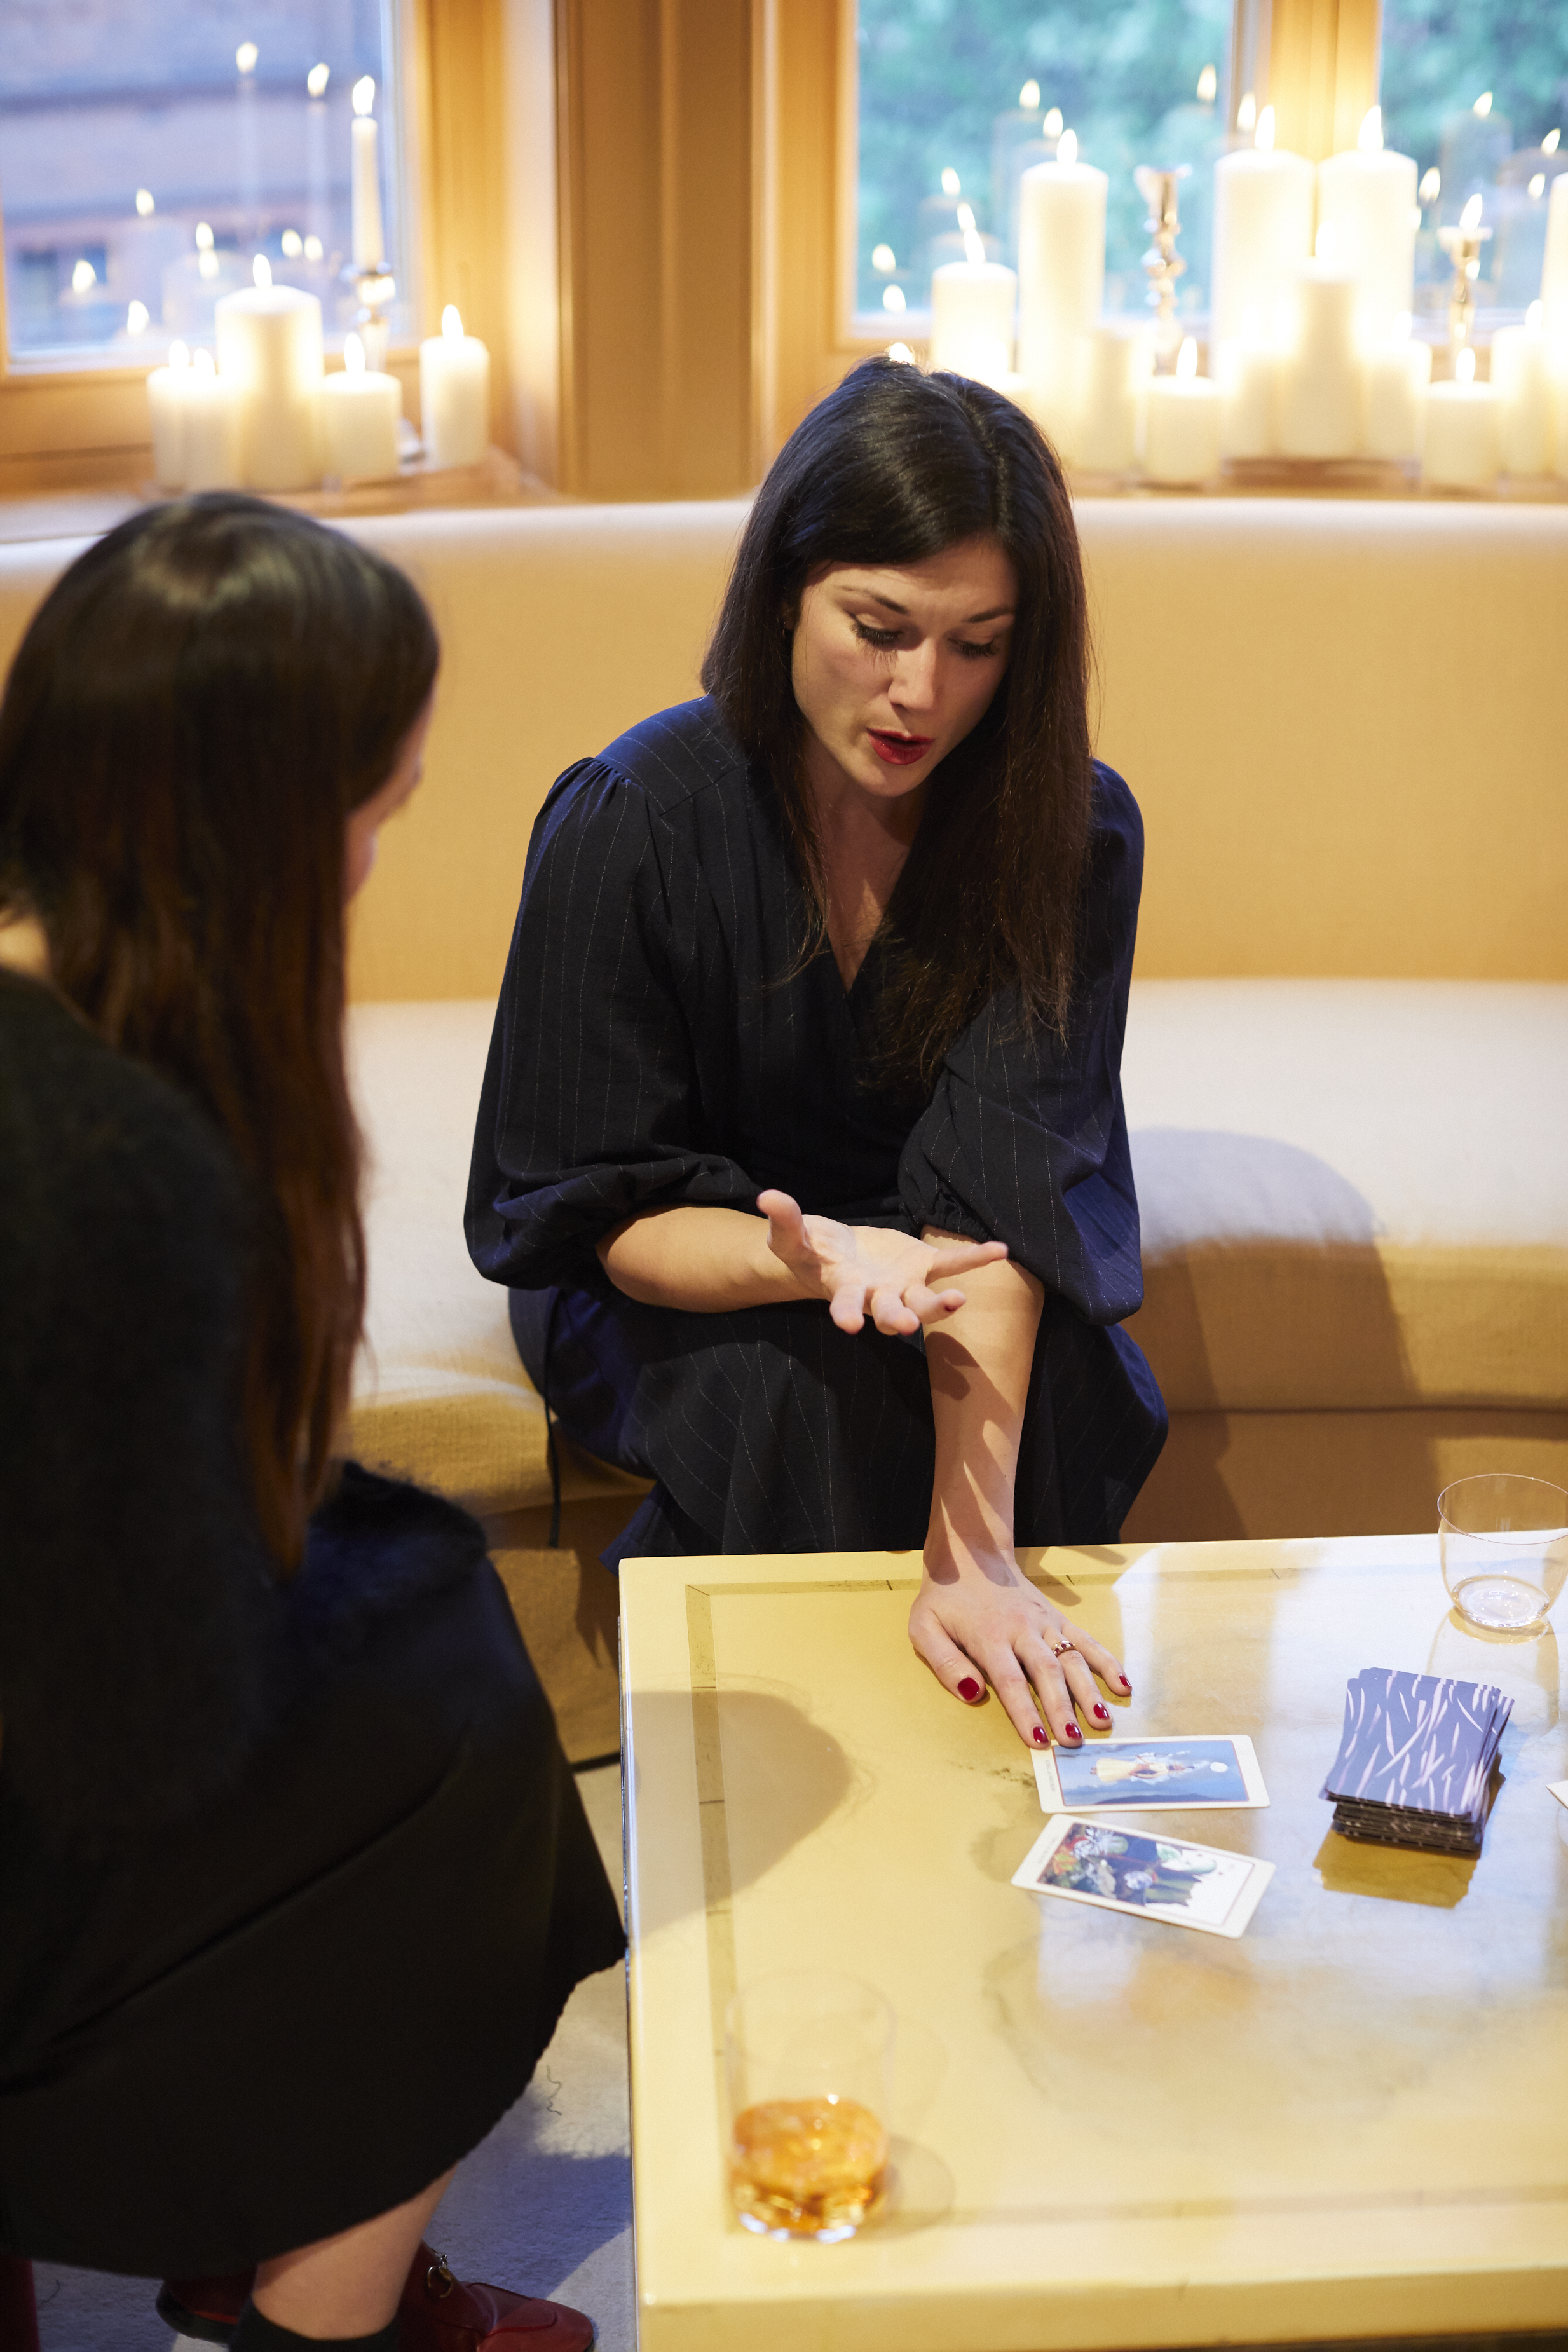 TAROT READINGS BY LITWITCHURE AT GANNI X MATCHESFASHION.COM PARTY AT 5 CARLOS PLACE (10).jpg